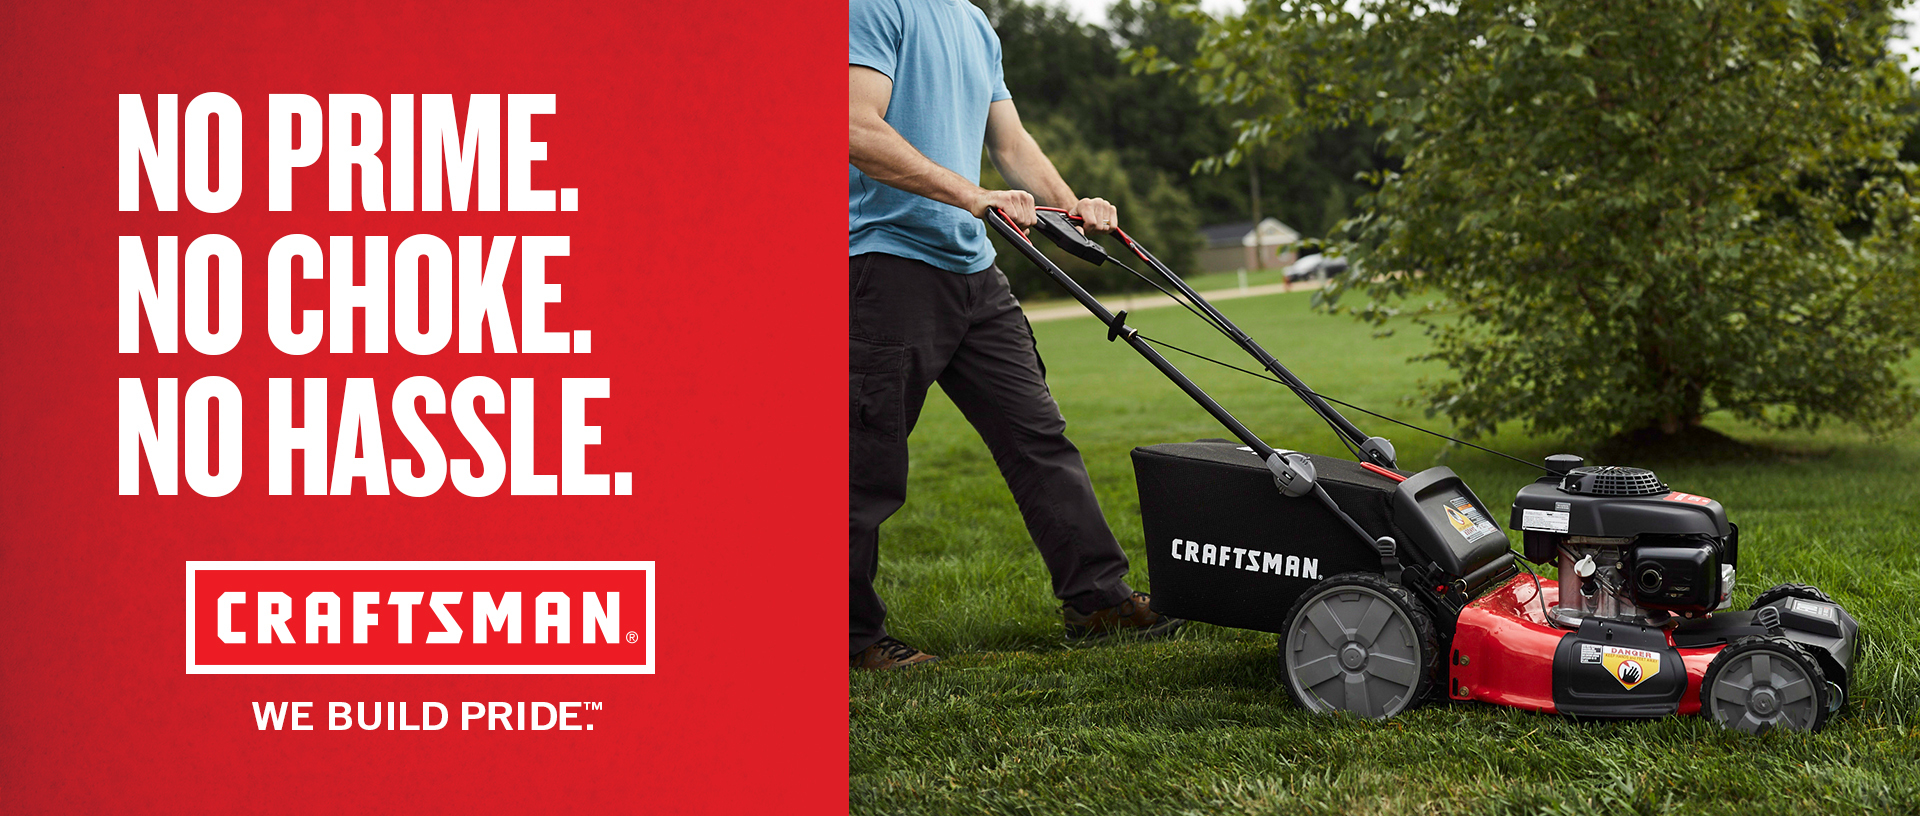 CRAFTSMAN M250 160-cc 21-in Self-propelled Gas Lawn Mower